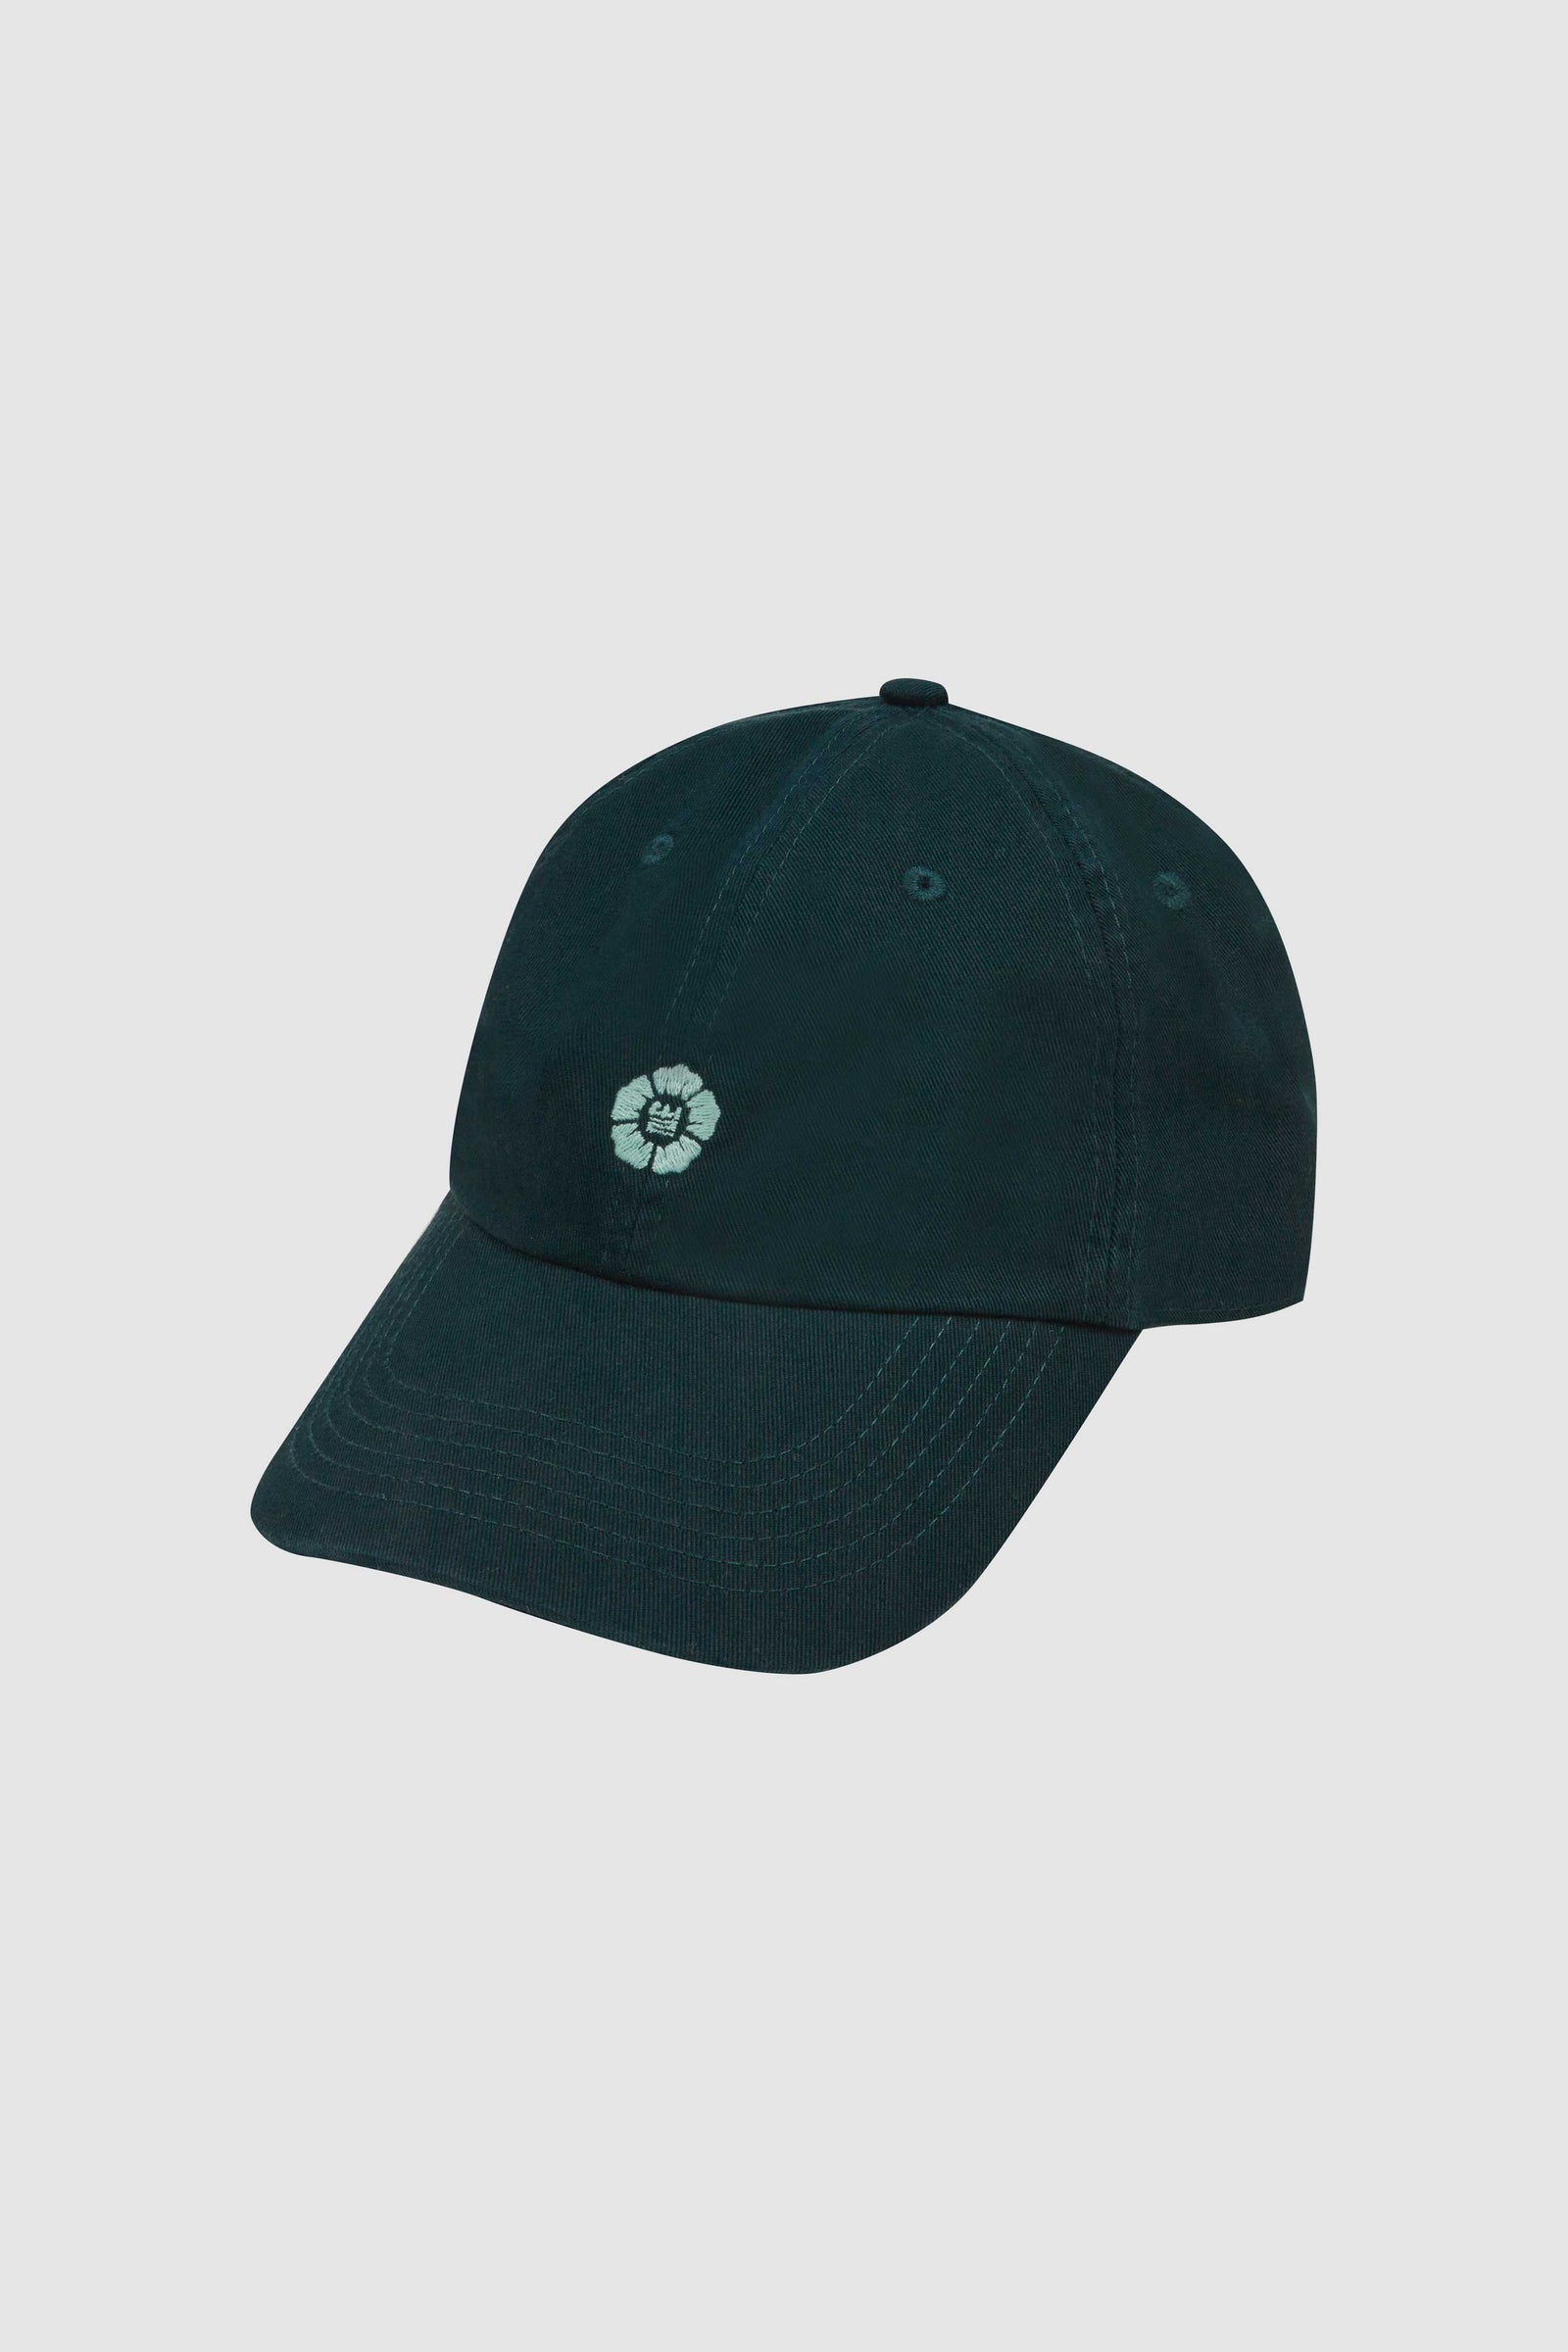 Photo of Logo Cap / Dark Green, number 2